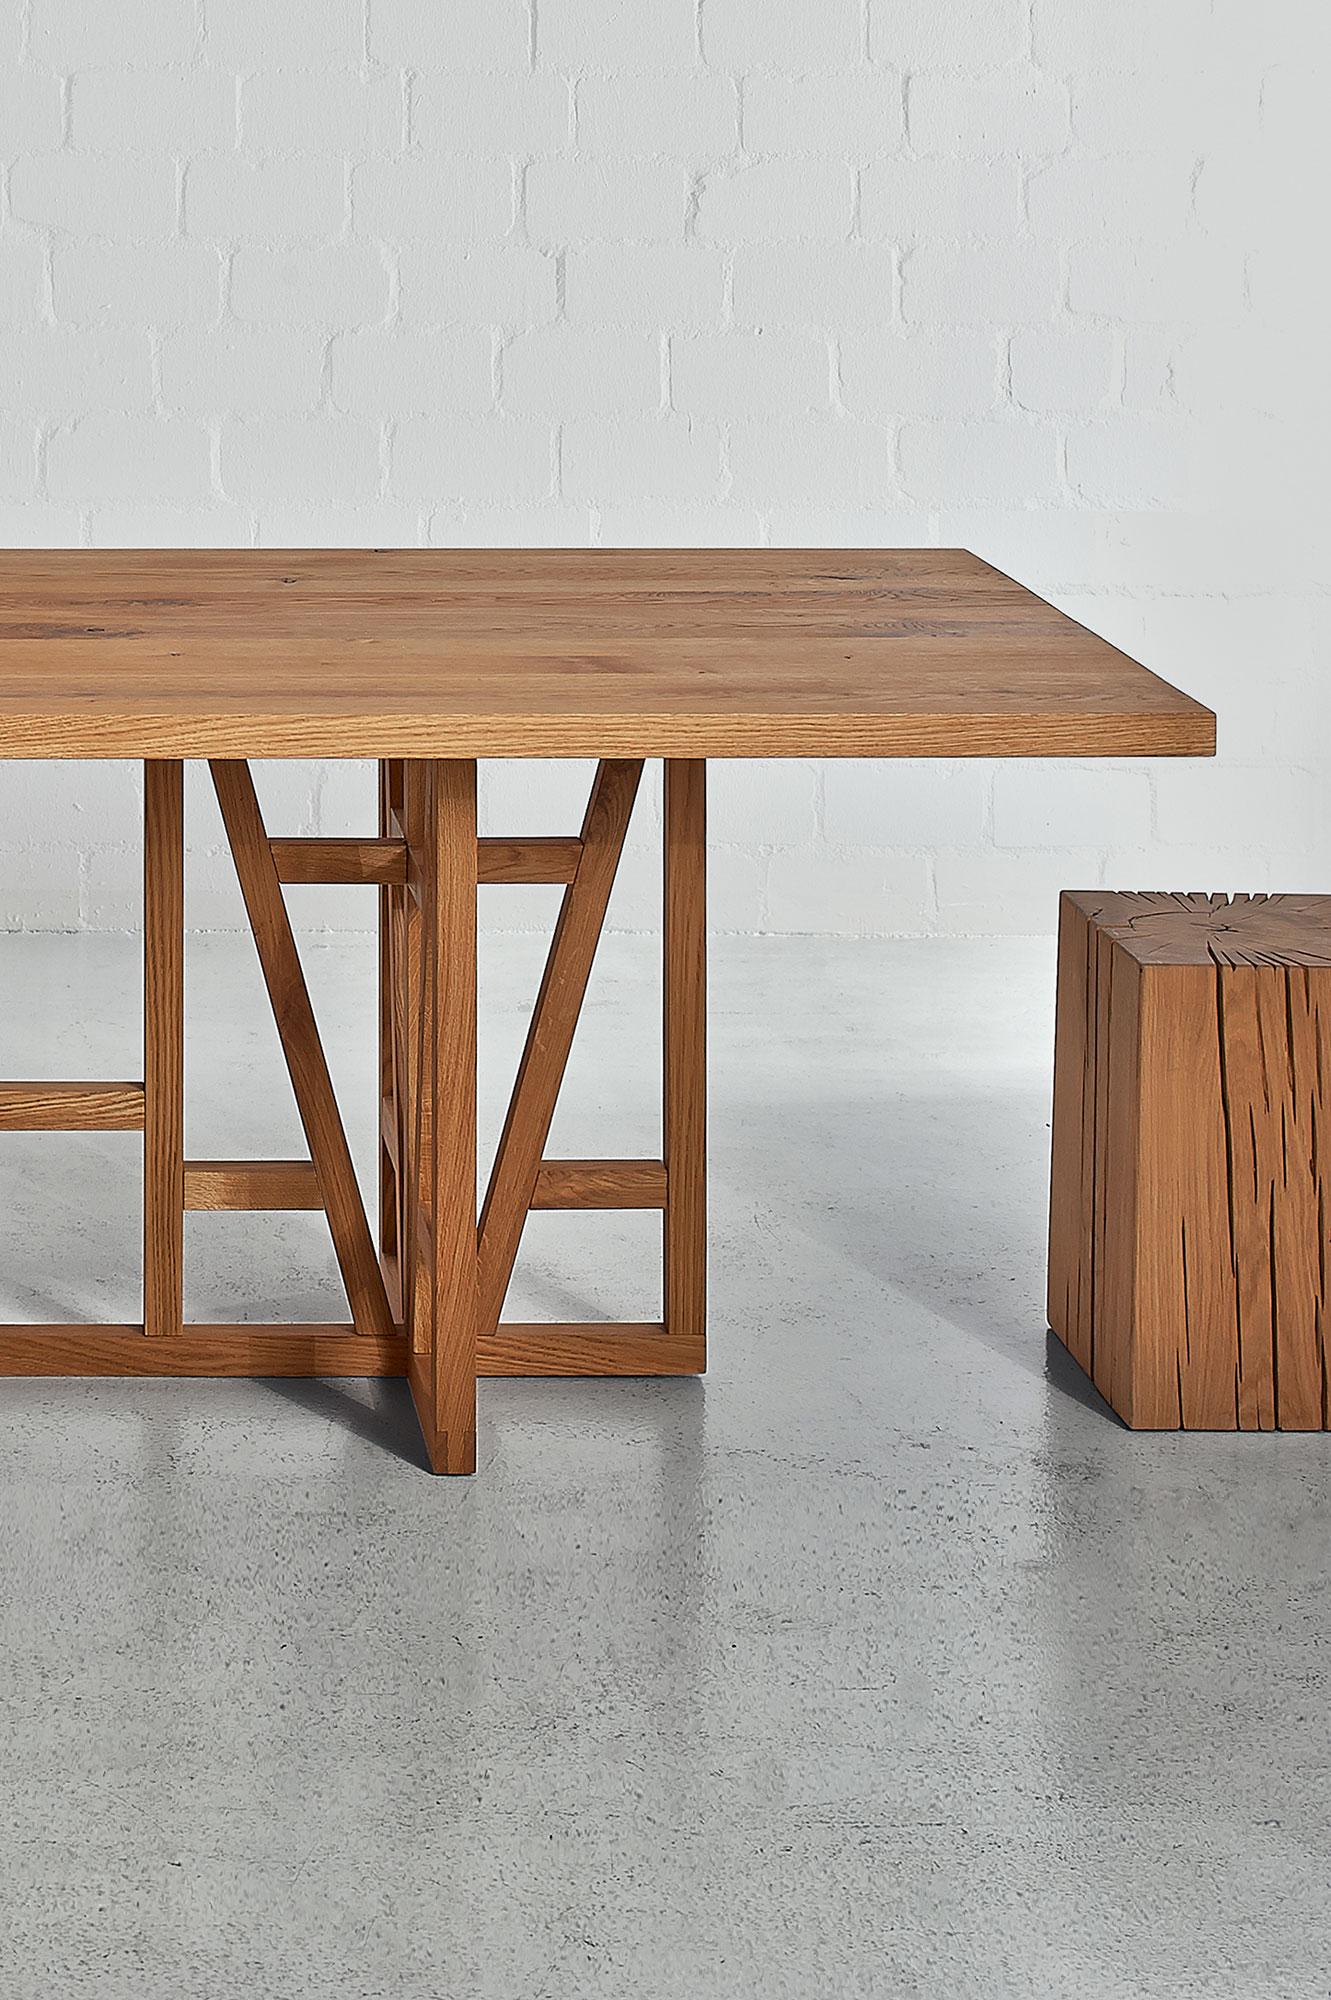 Designer Solid Wood Table FACHWERK 0037a2iia custom made in solid wood by vitamin design